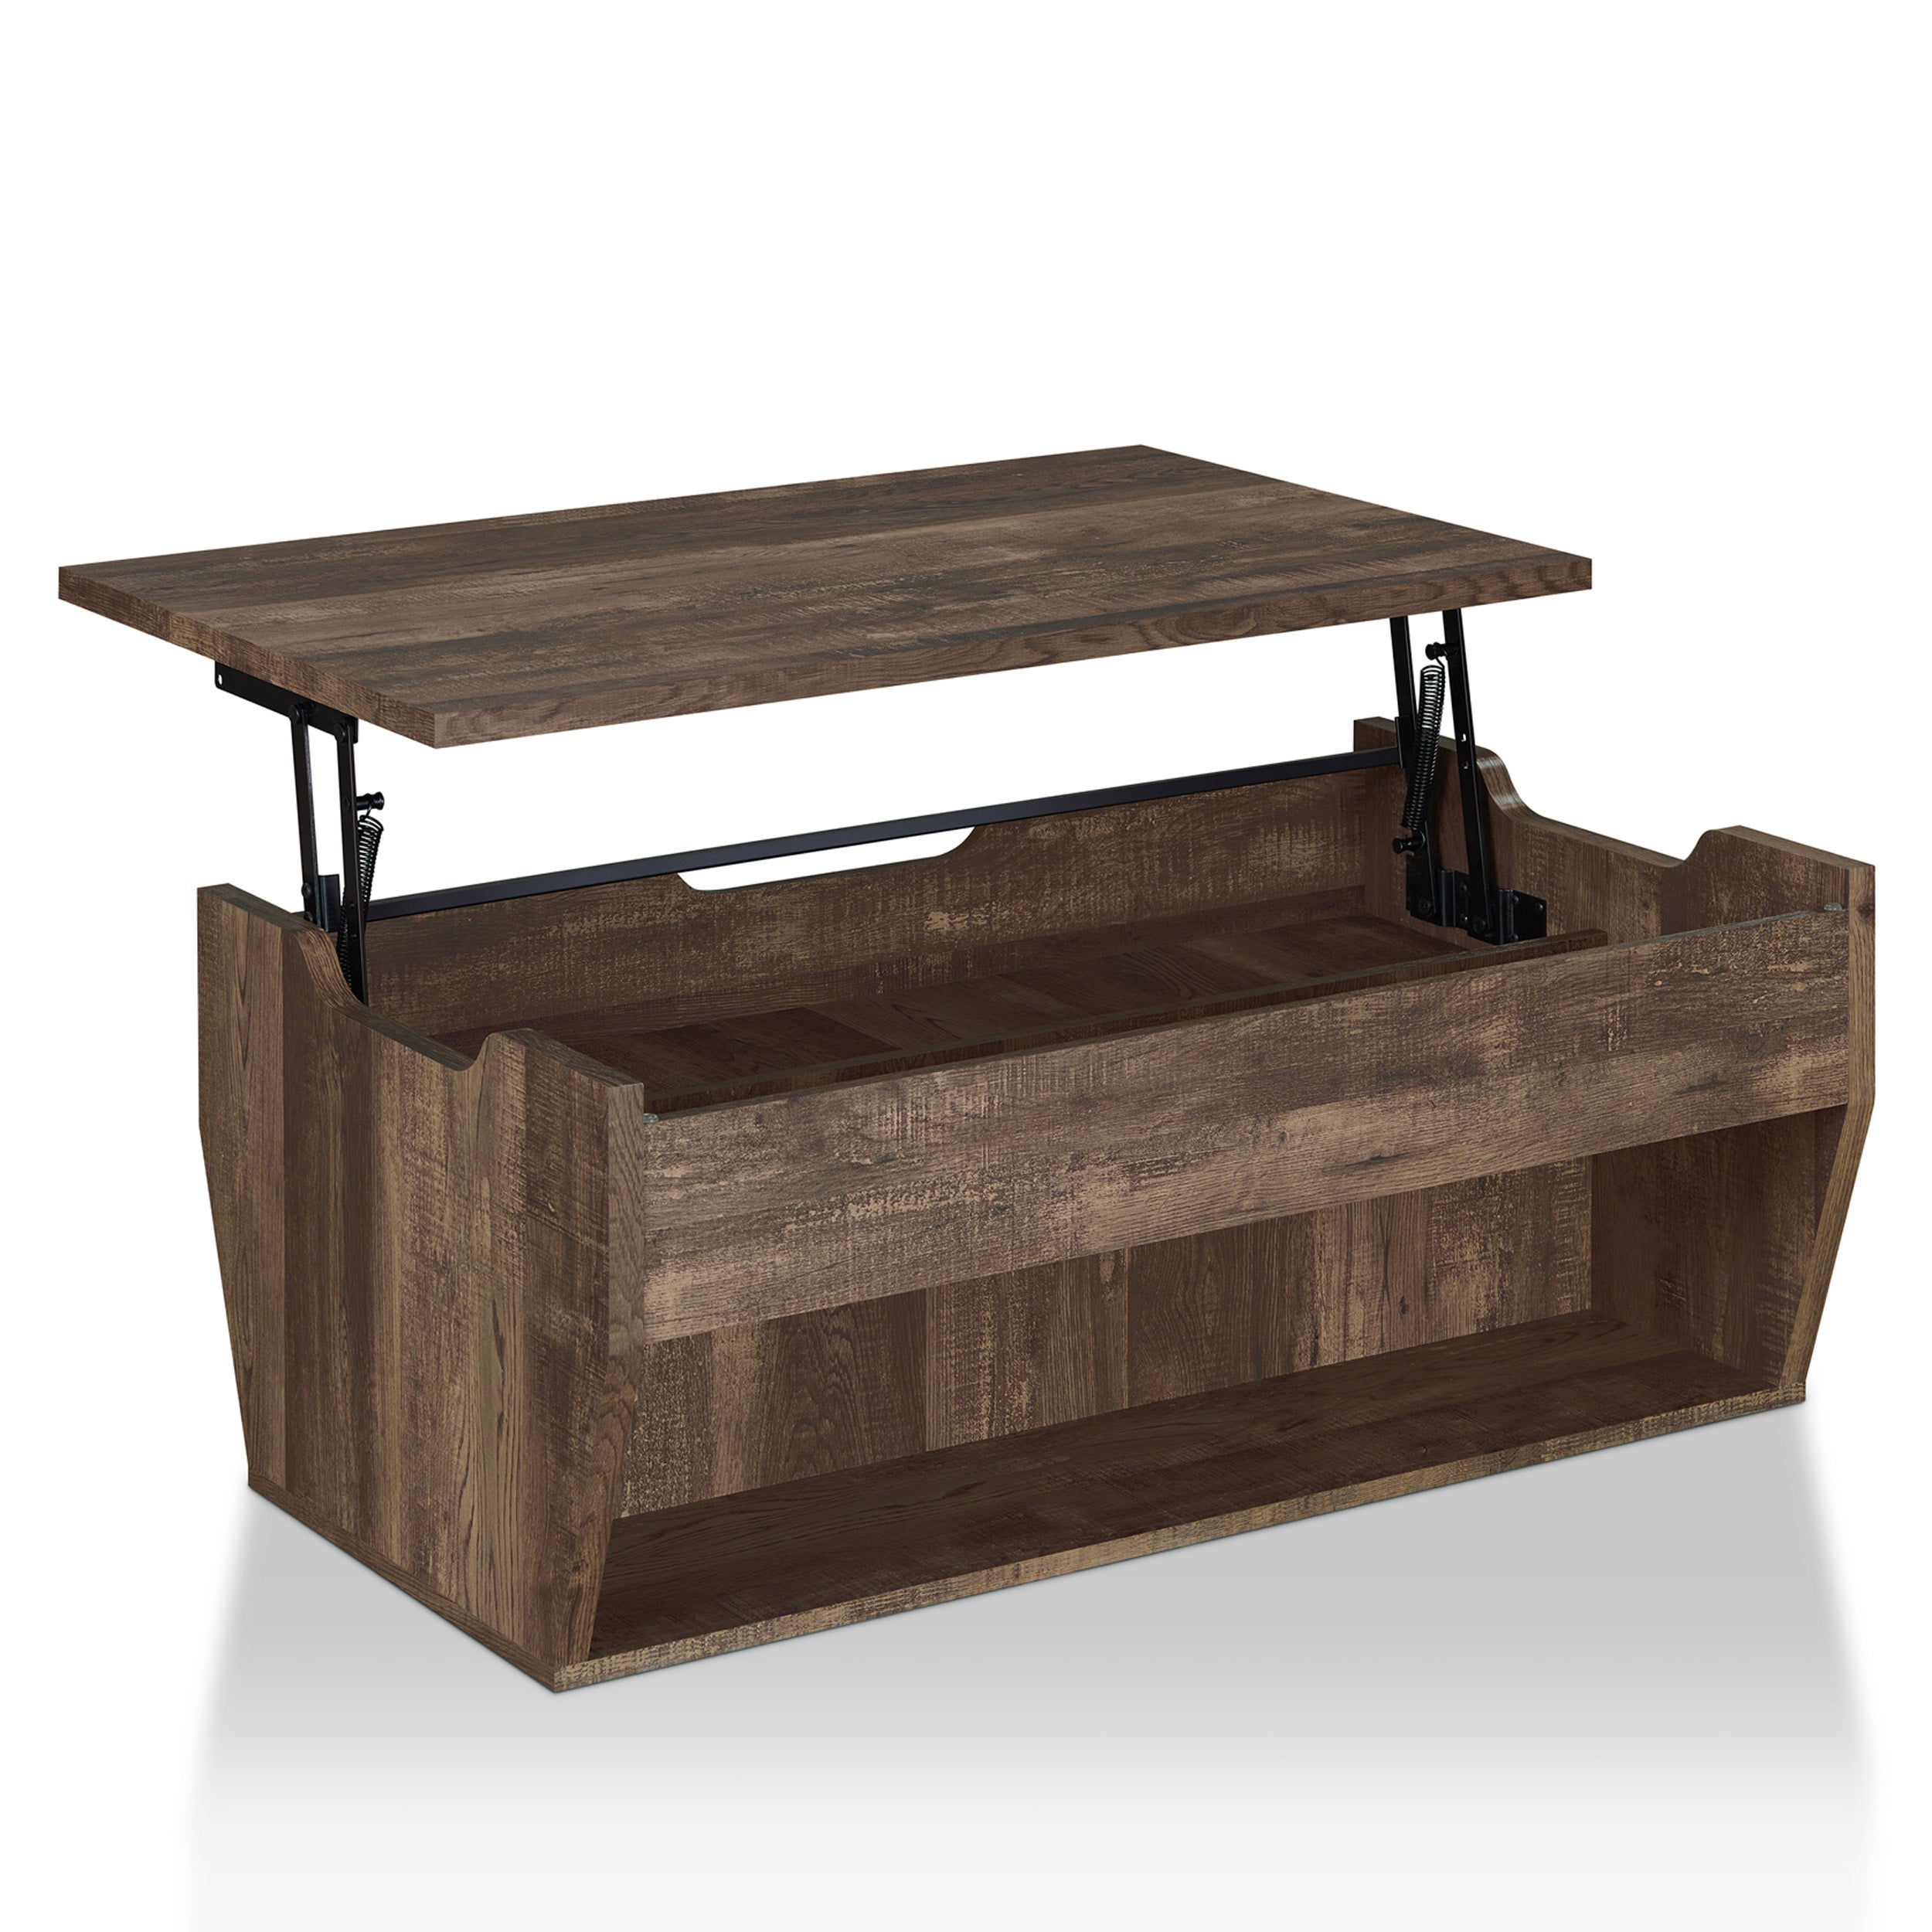 Oak Coffee Table Caring And Maintenance Tips Shop Jameson Rustic Reclaimed Oak Lift-top Coffee Table by FOA - On Sale -  Free Shipping Today - Overstock - 22648760